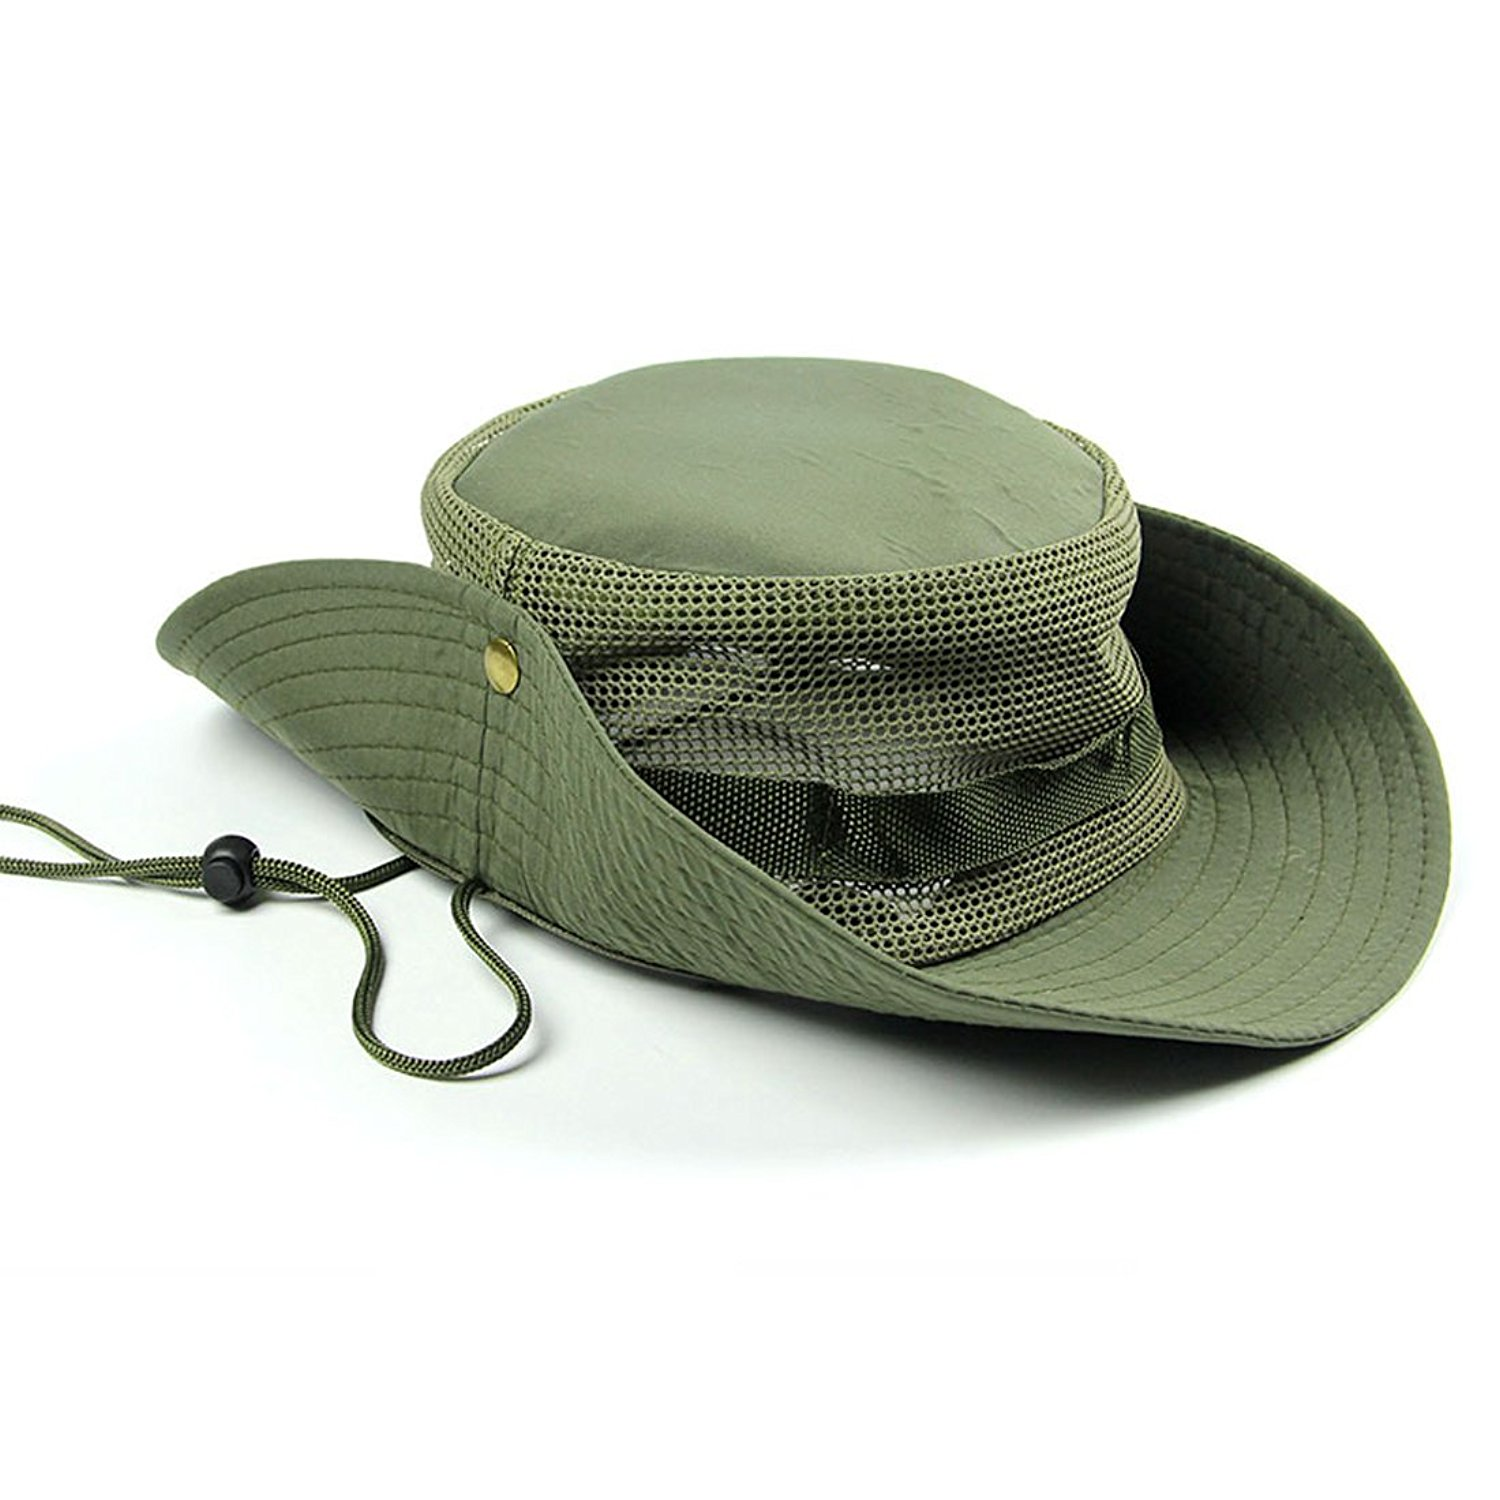 be6ecba4747bc Get Quotations · Boonie Hat